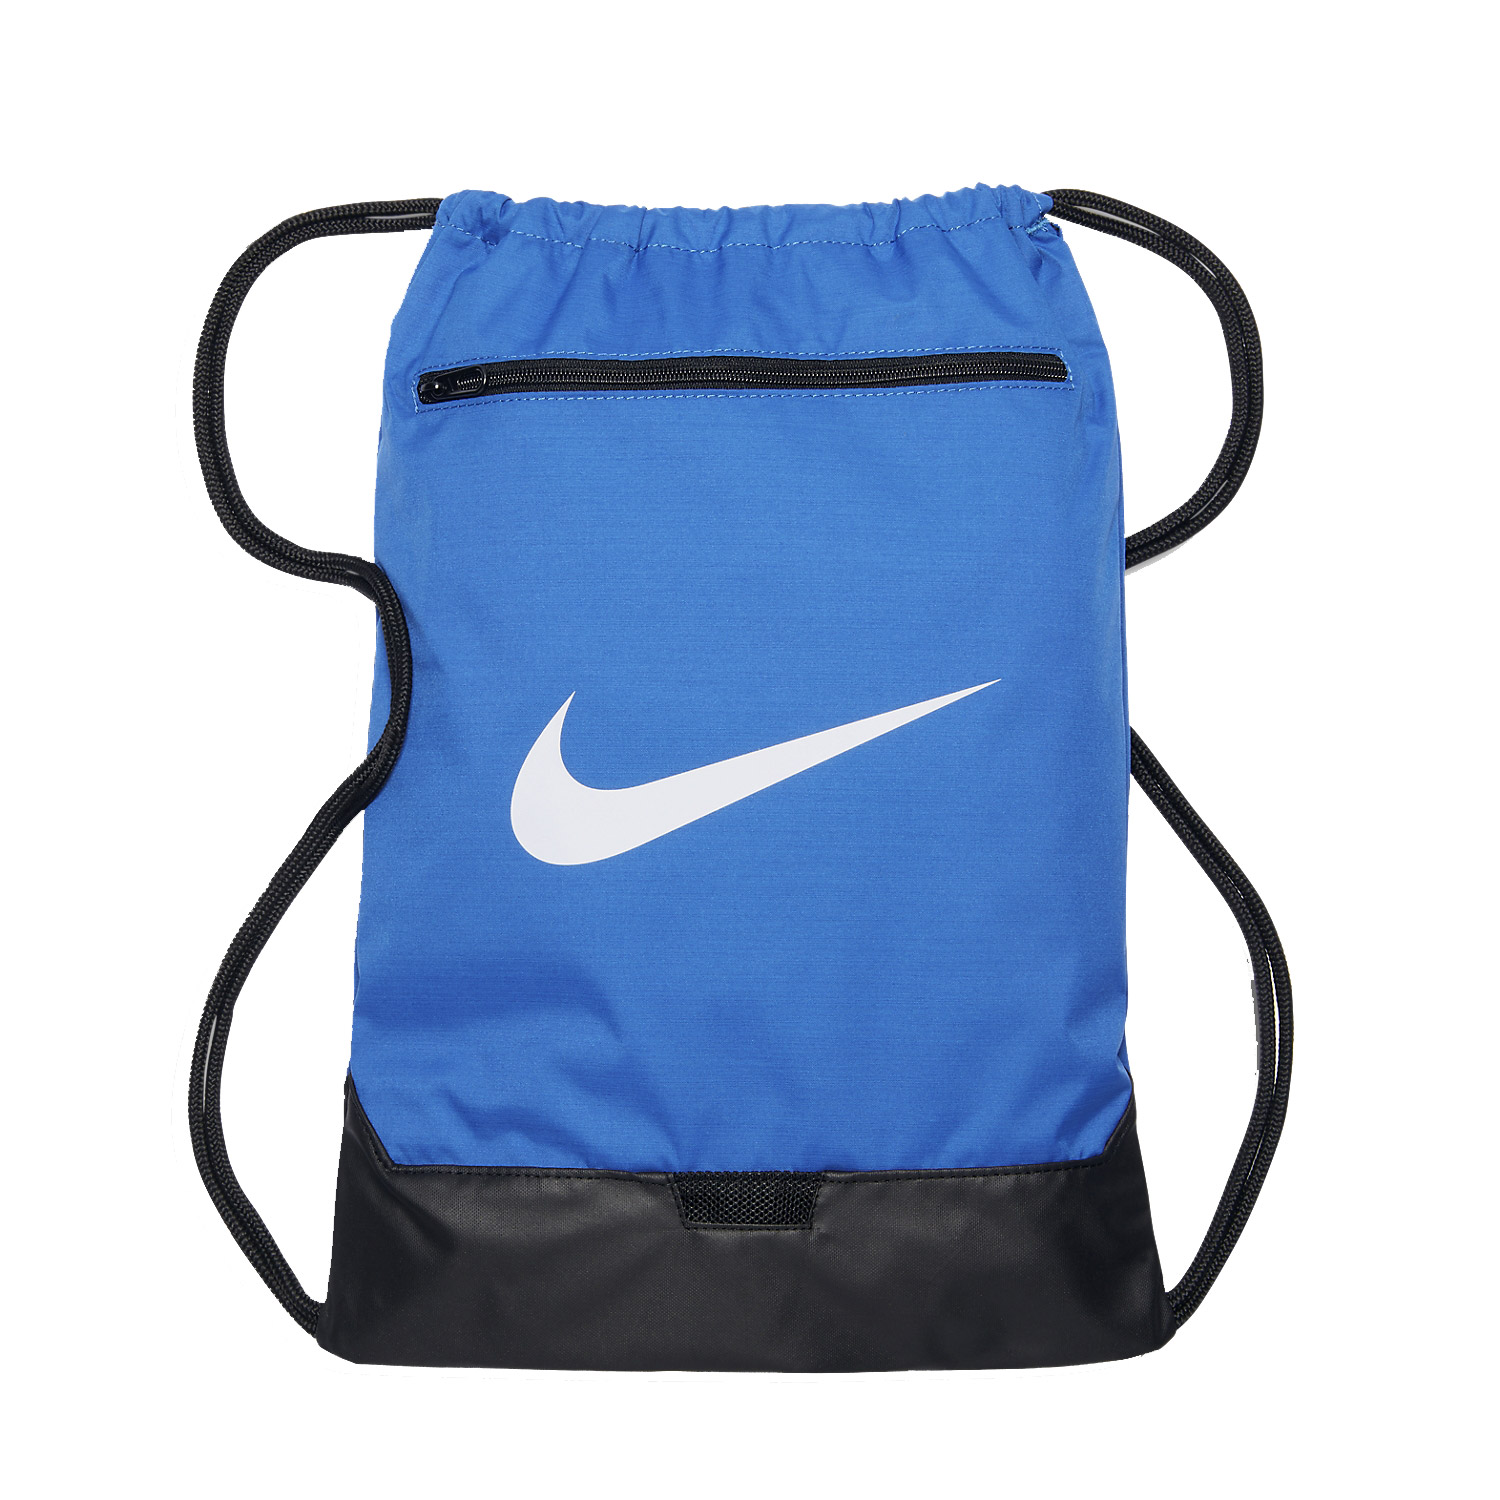 Nike Brasilia Sackpack - Game Royal/White